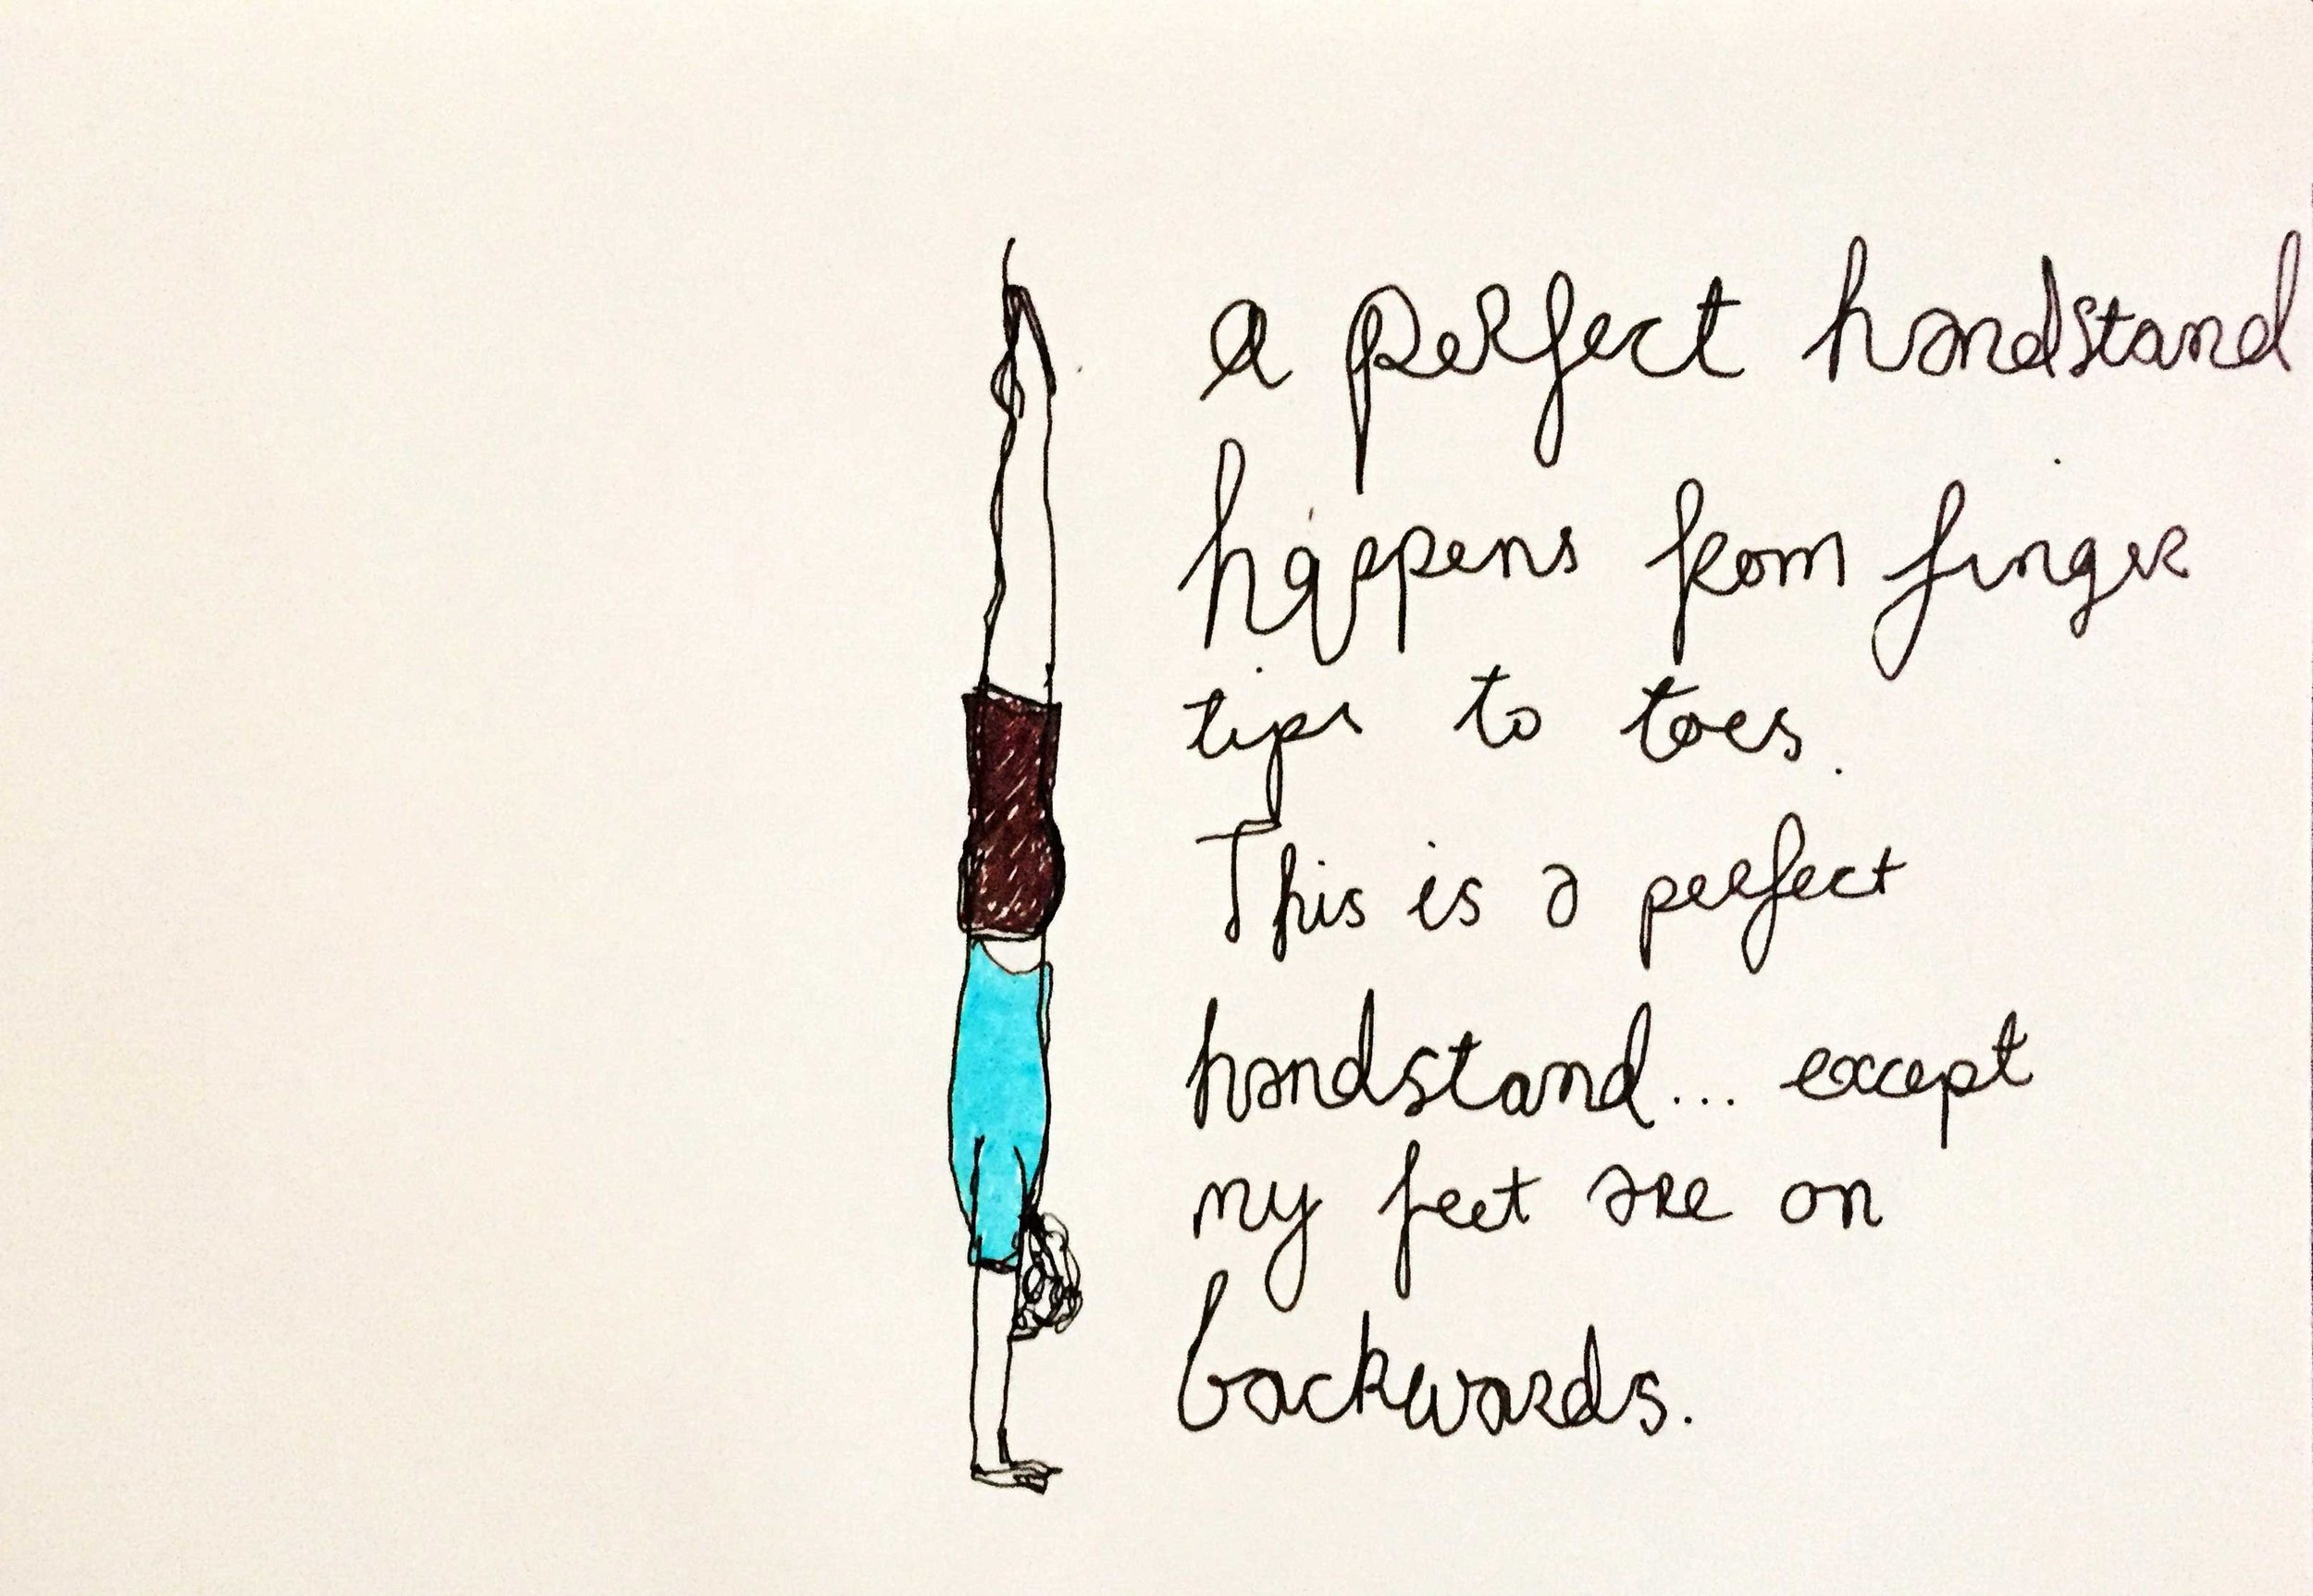 A perfect handstand. Drawing Luke Hockley.